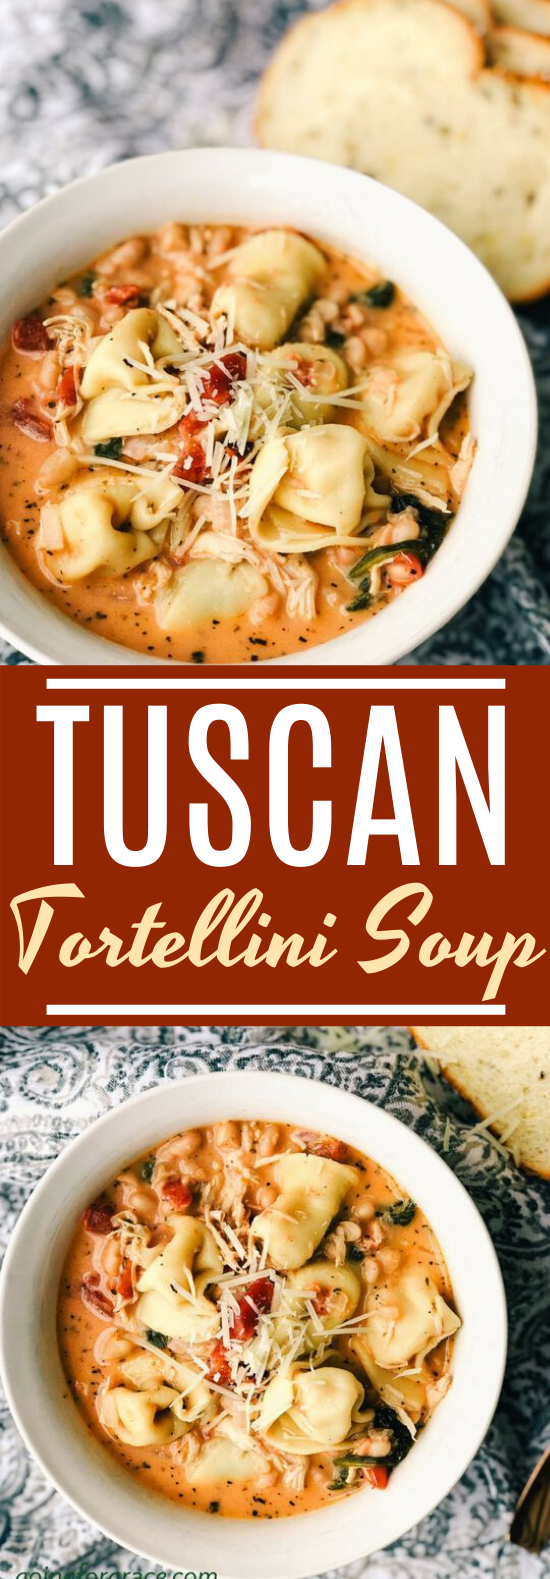 Tuscan Tortellini Soup #dinner #soup #recipes #comfortfood #pasta